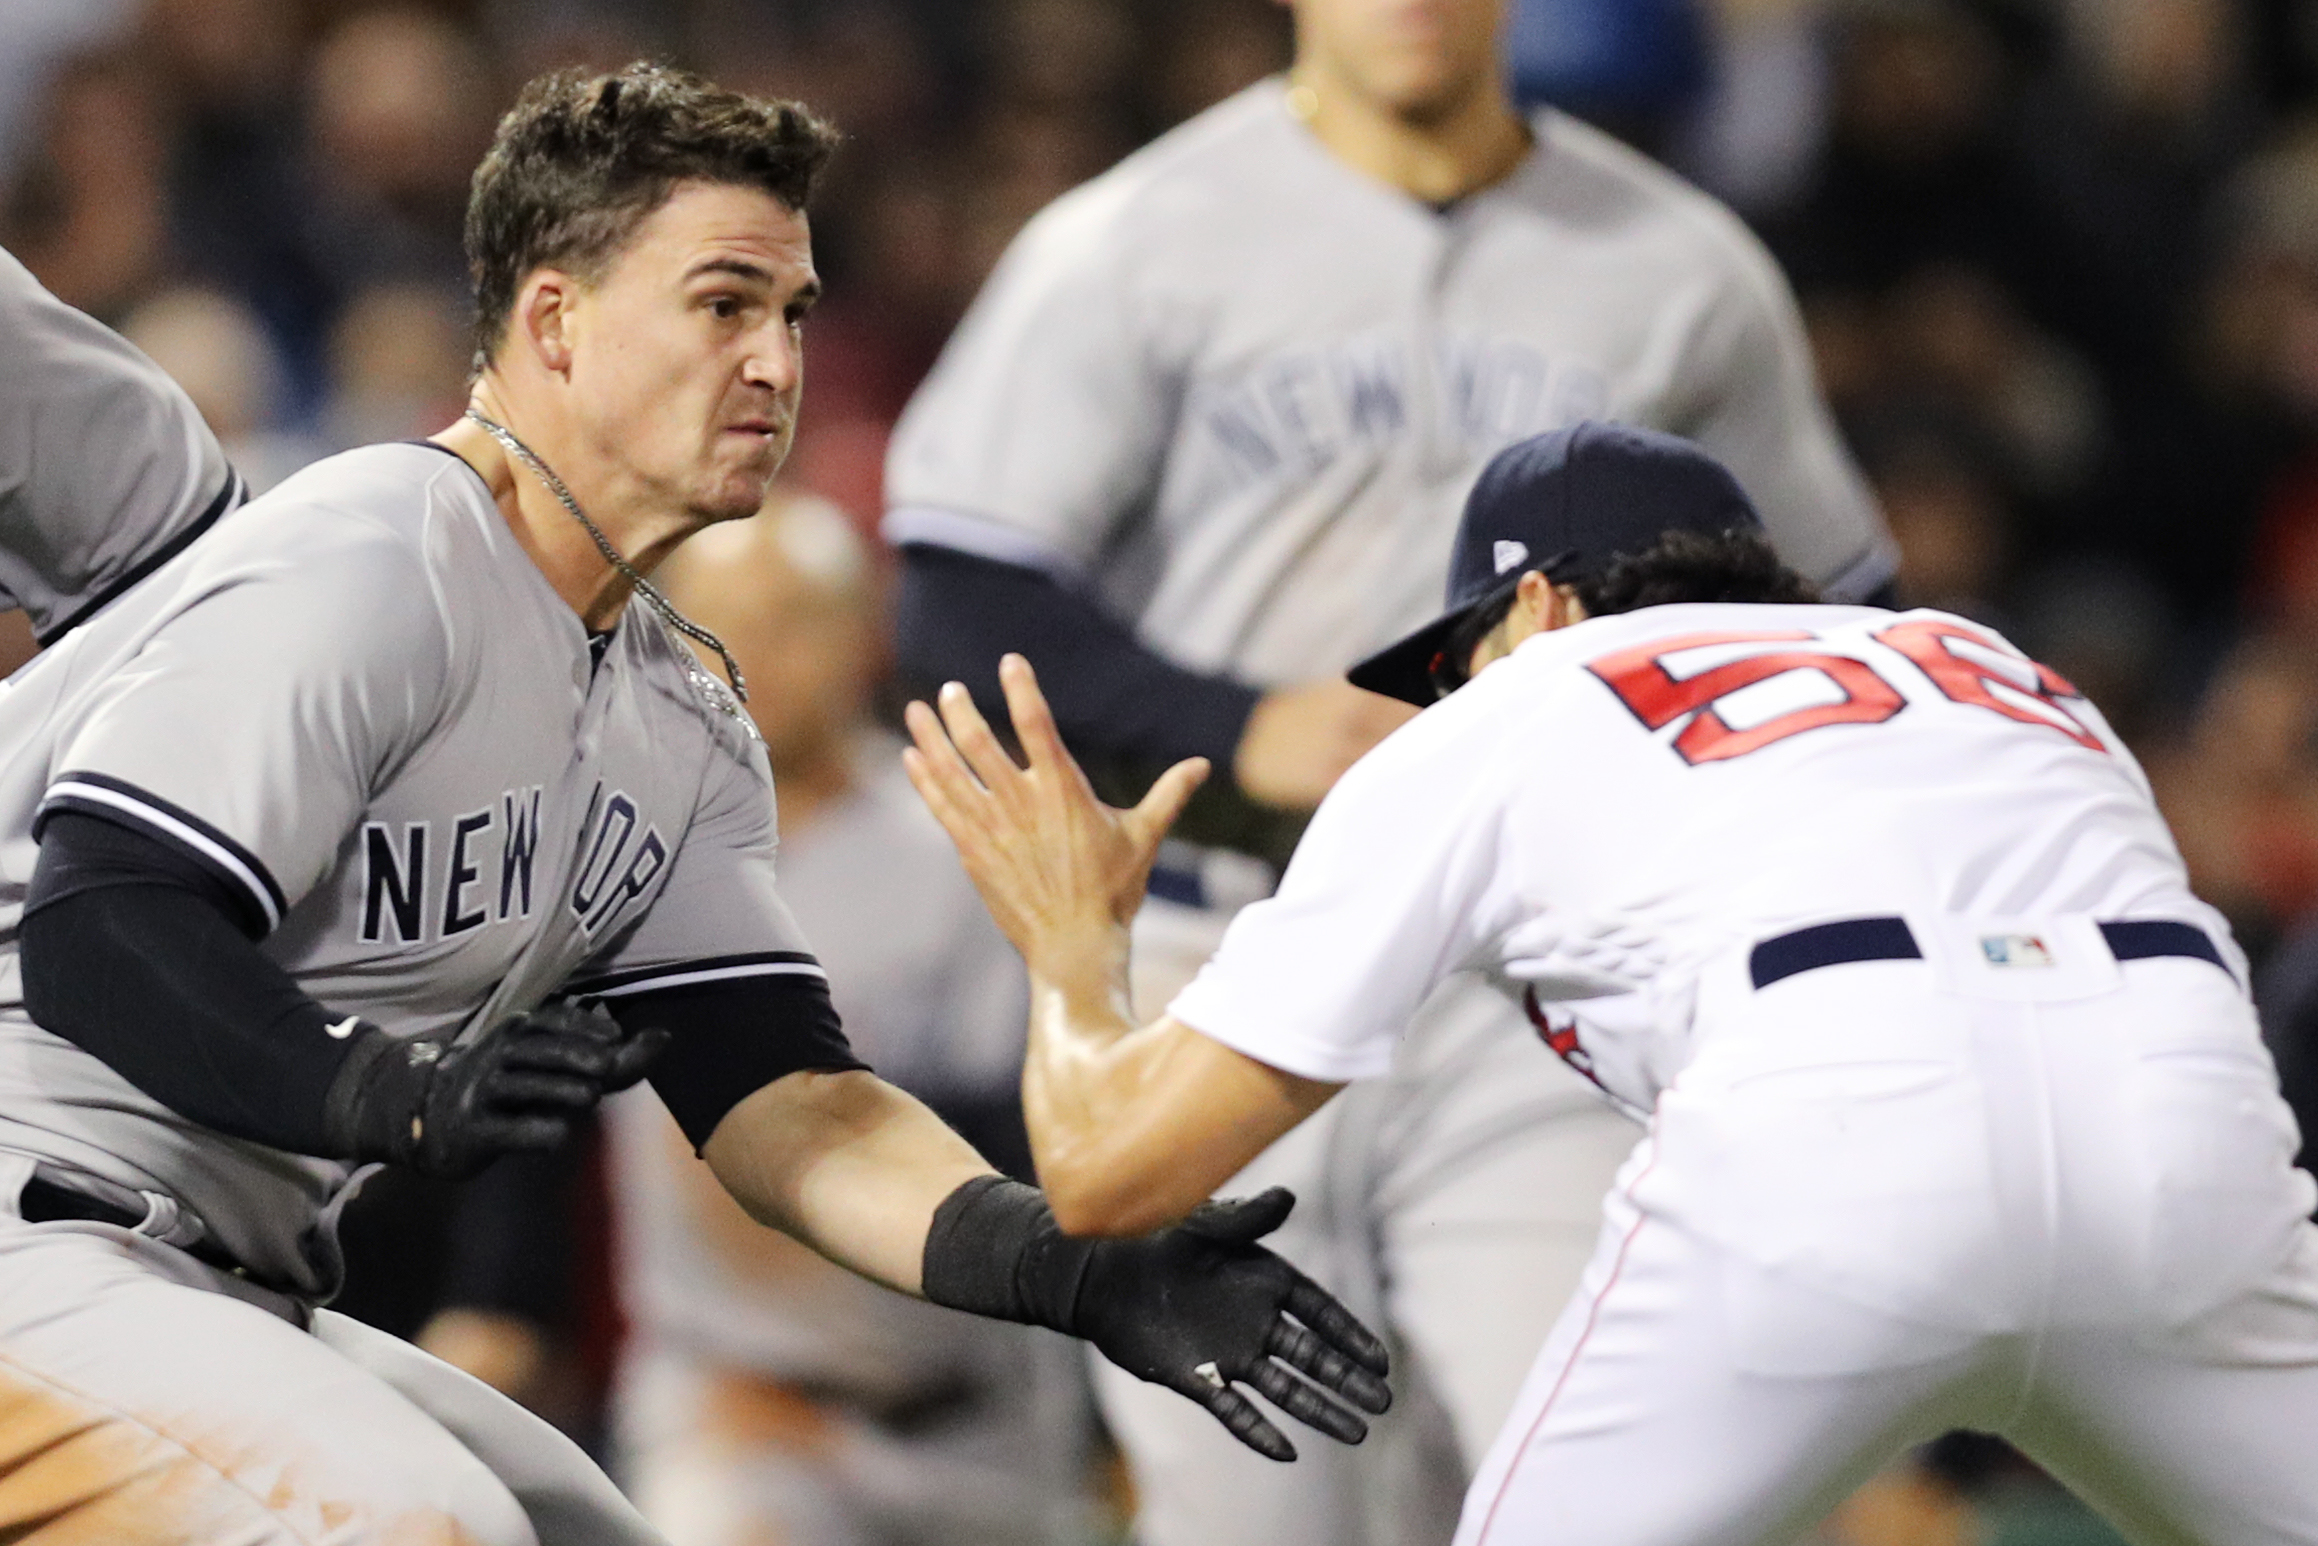 The 7 best moments from the Red Sox and Yankees' brutal brawl